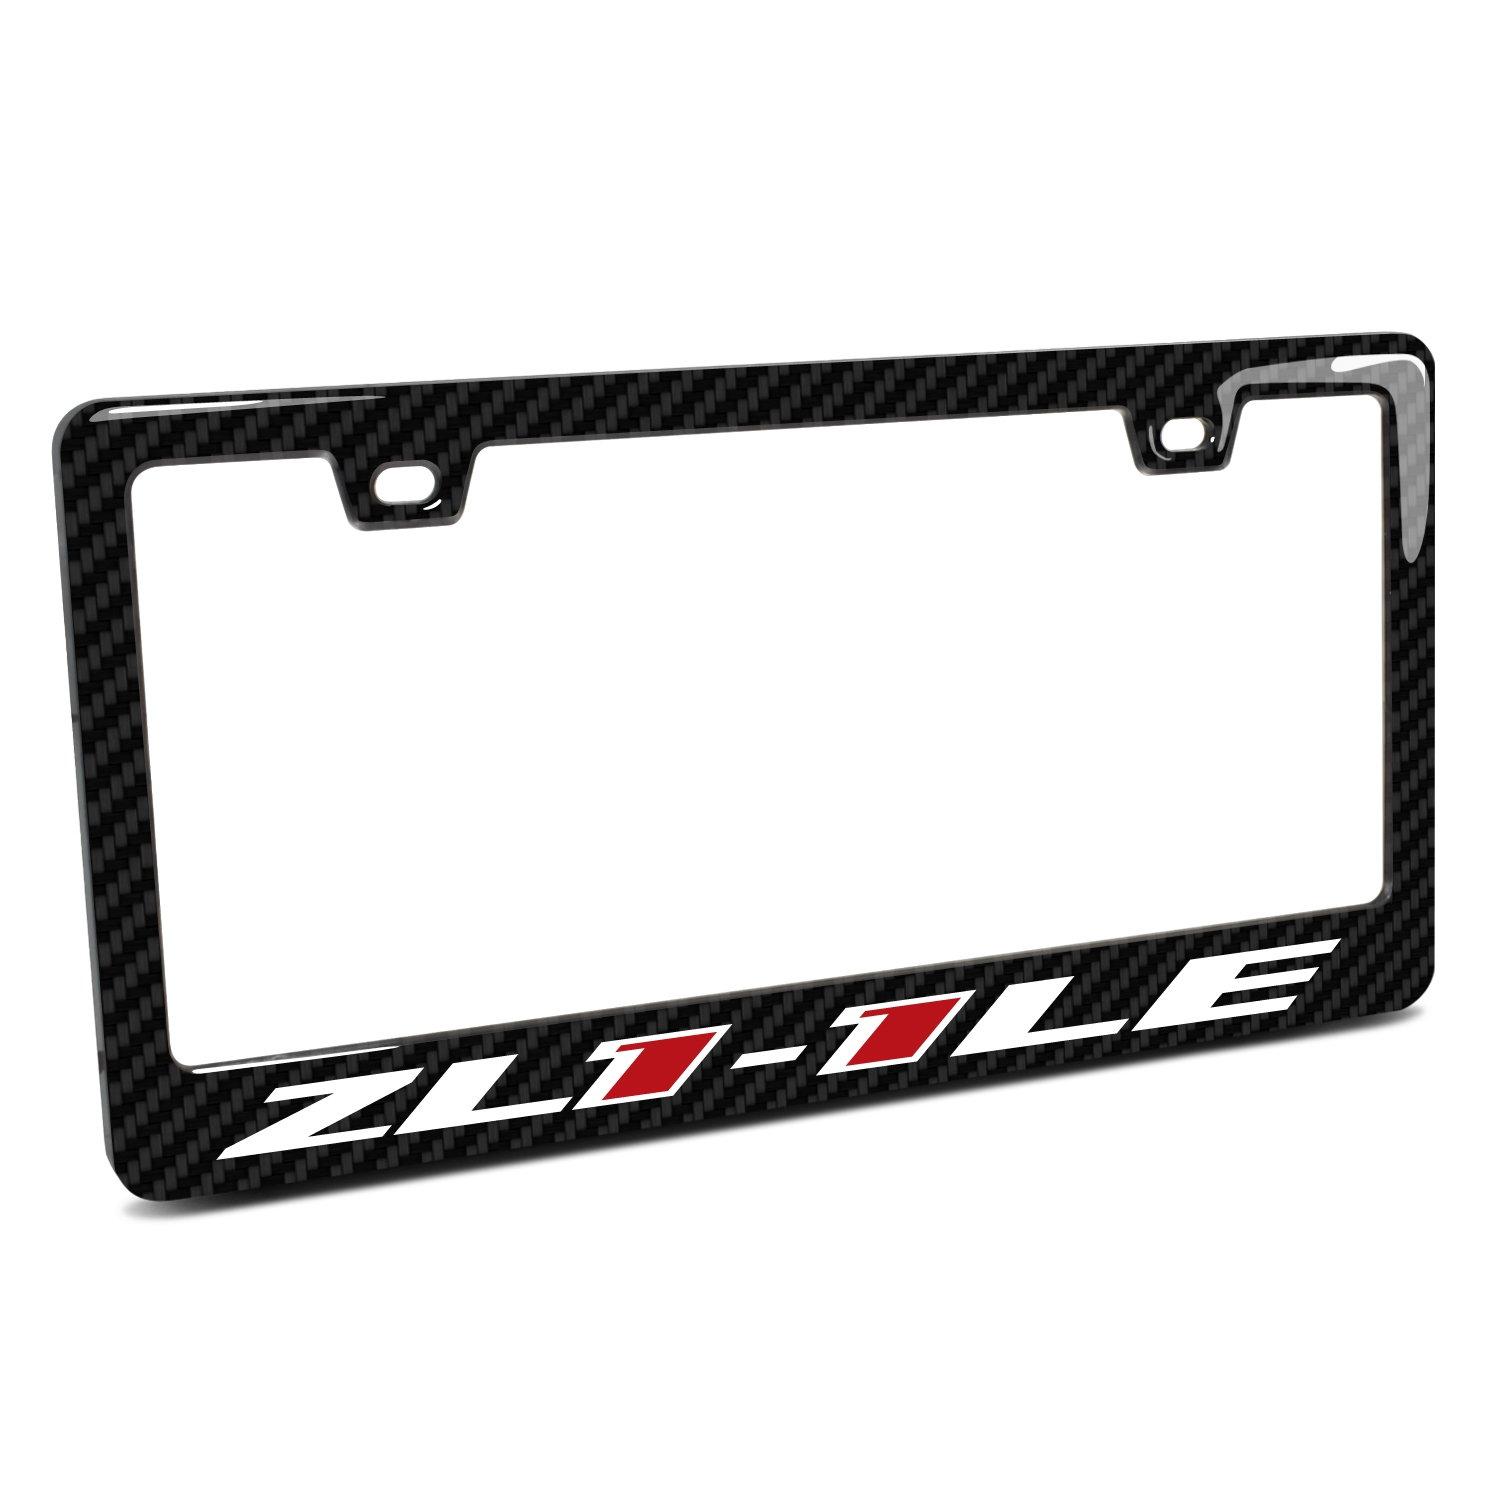 Chevrolet Camaro ZL1-1LE Logo in 3D on Real 3K Carbon Fiber Finish ABS Plastic License Plate Frame